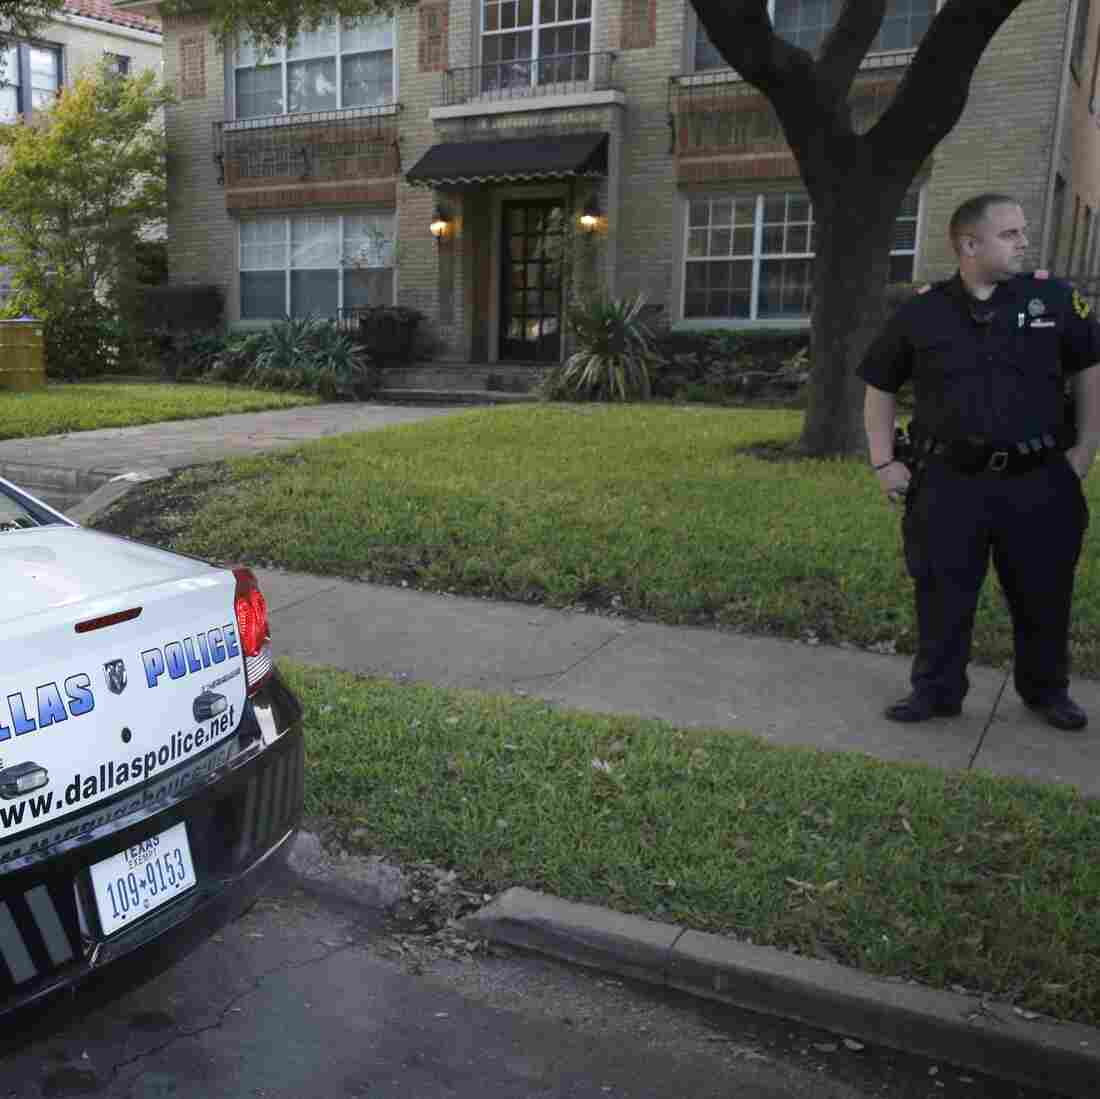 Police stand guard outside the apartment of a hospital worker who has tested positive for Ebola in Dallas Sunday. In the background is a yellow barrel used to dispose of hazardous materials.